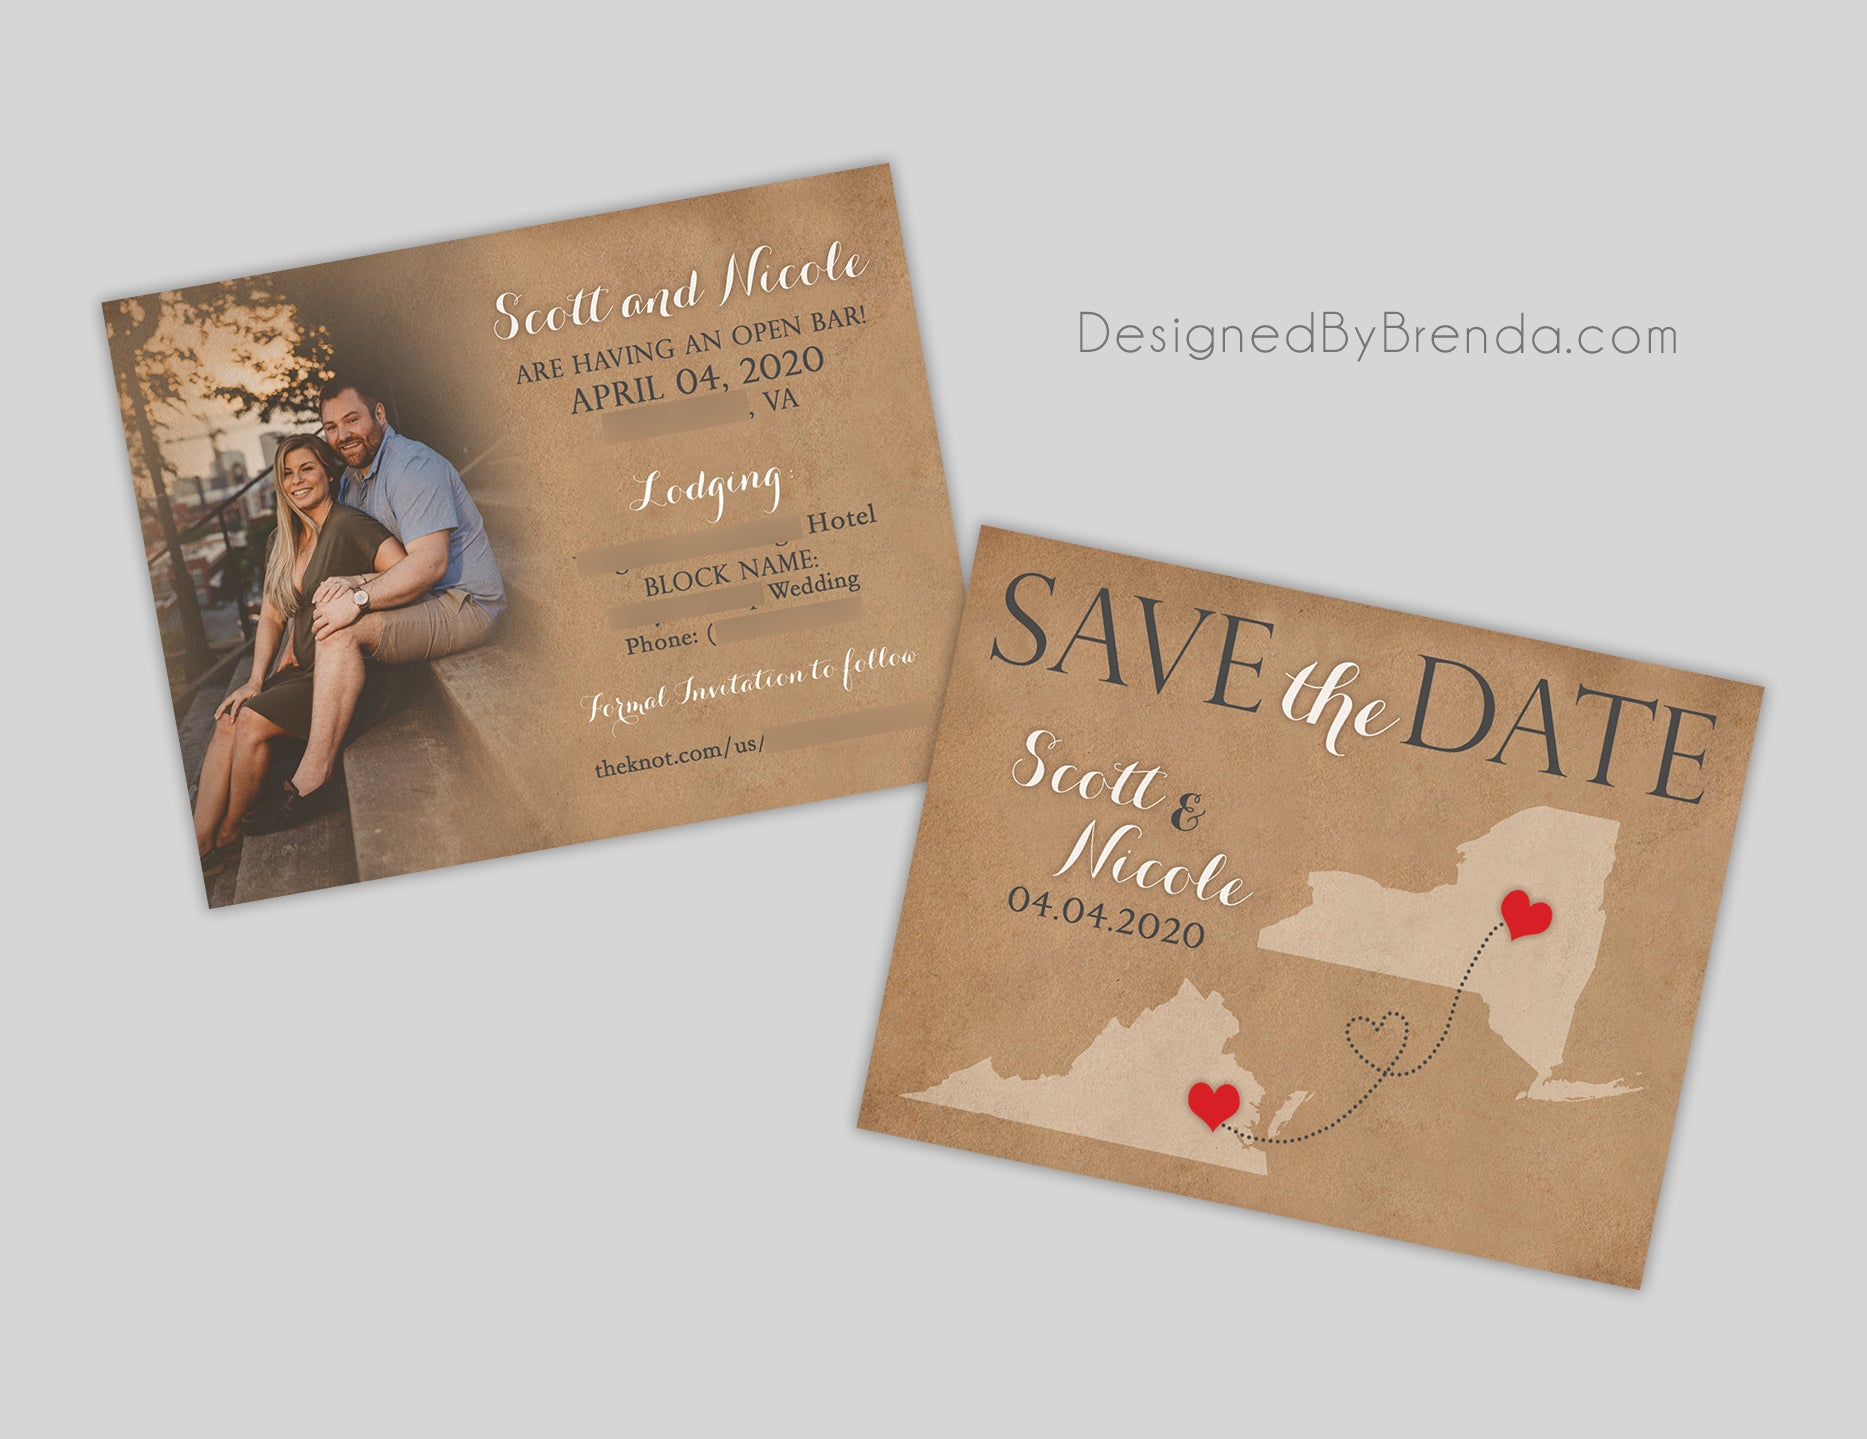 Vintage Style Save the Date - Rustic Southern Feel with Map of States